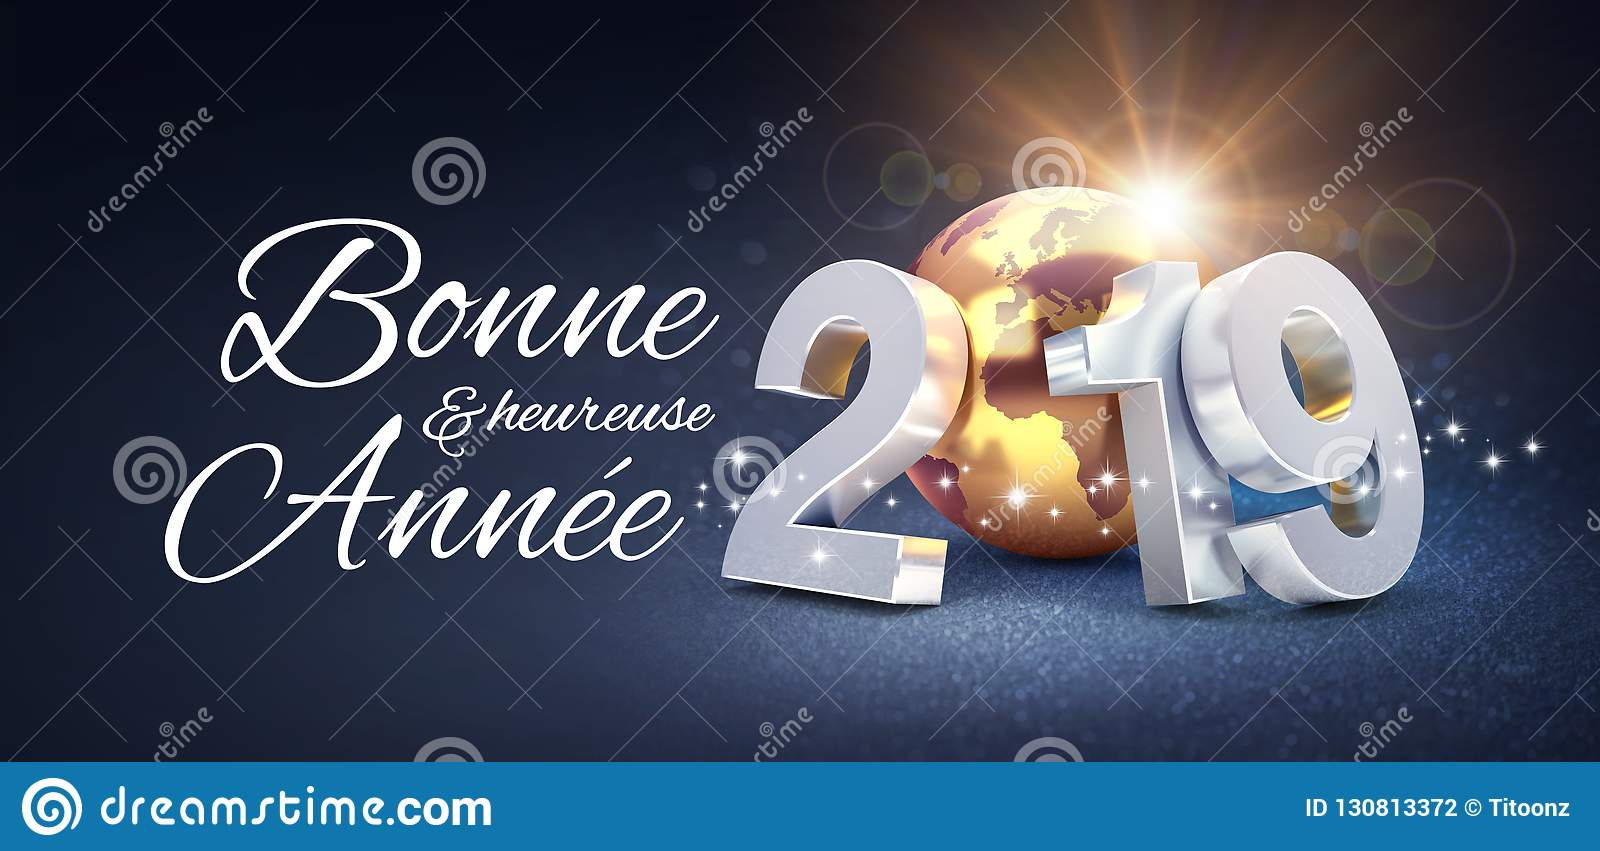 new year 2019 greeting card in french